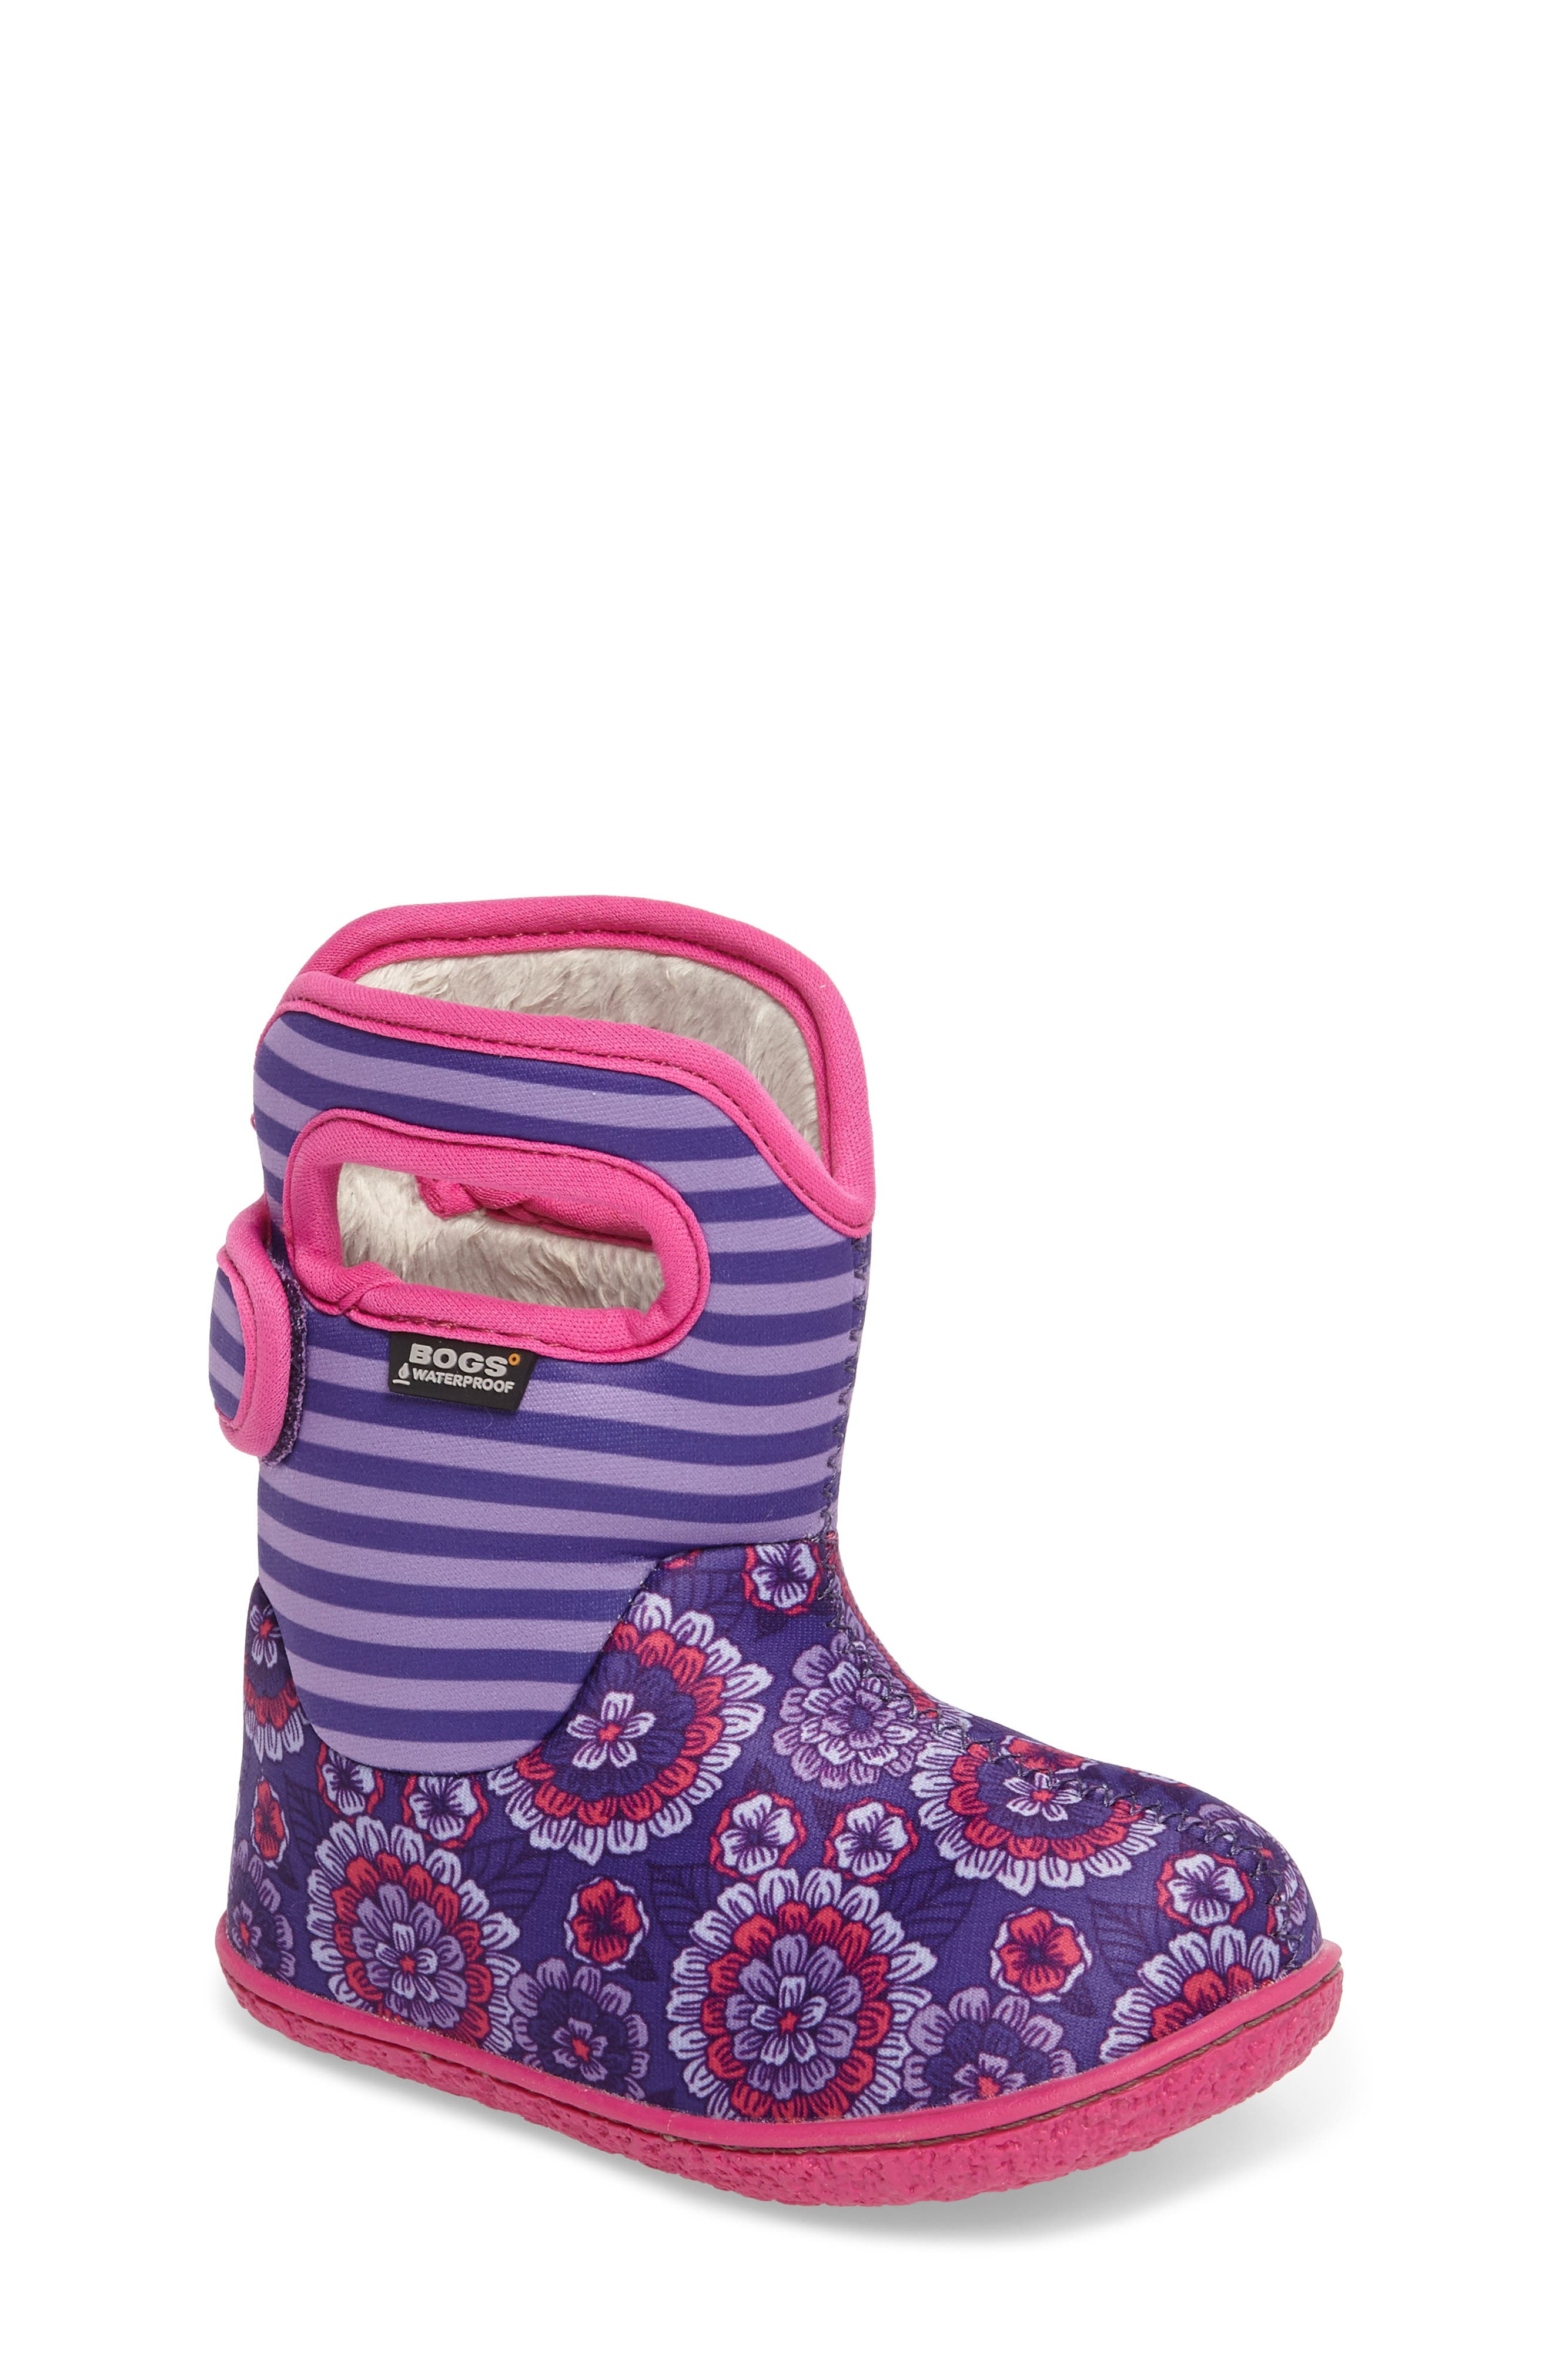 Baby Bogs Classic Pansies Washable Insulated Waterproof Boot,                             Main thumbnail 1, color,                             PURPLE MULTI